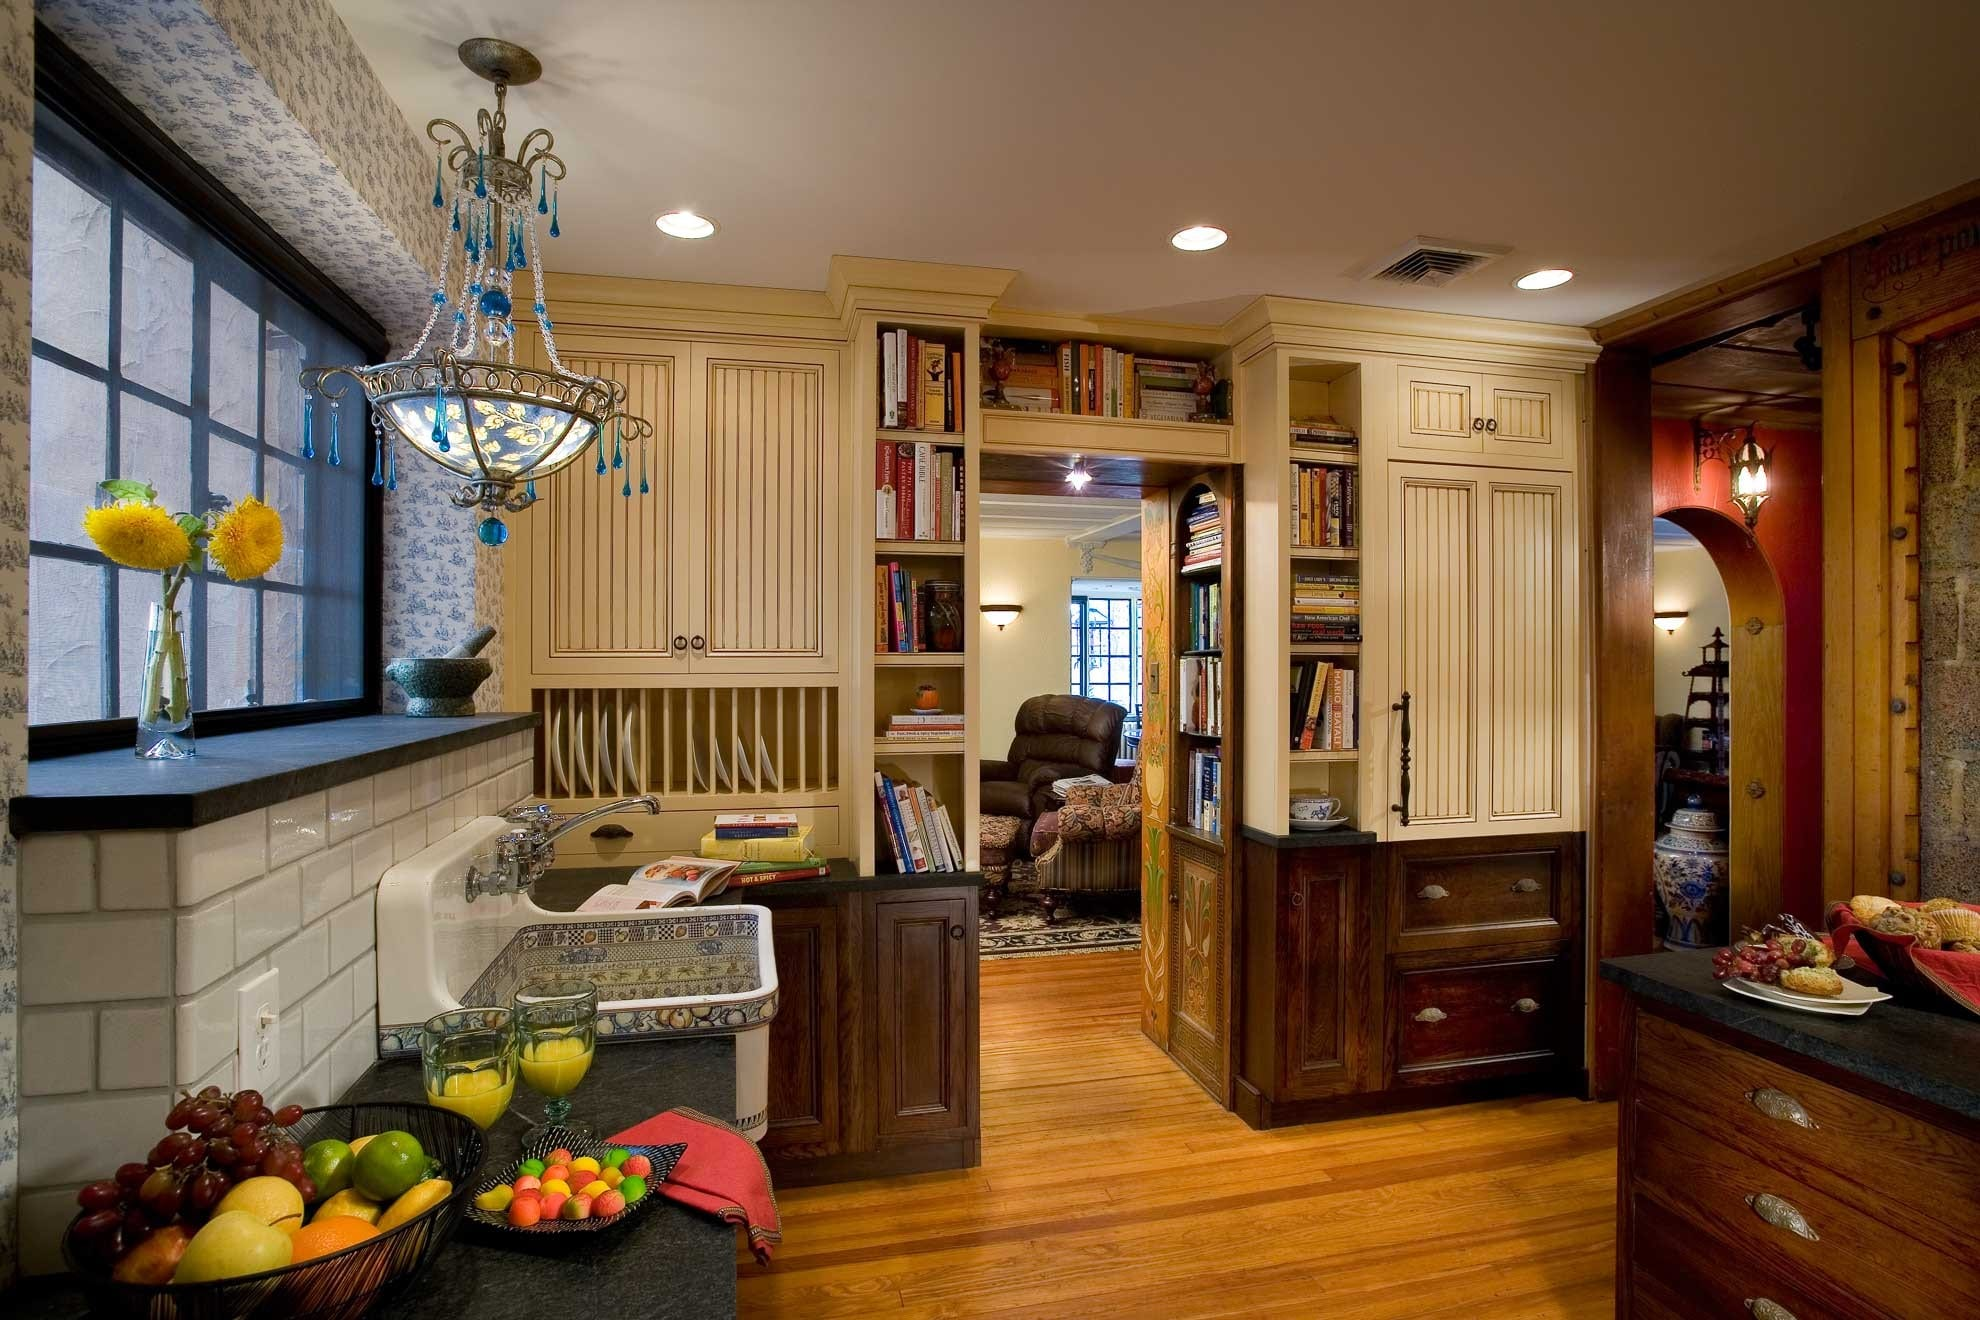 Carlisle PA Remodeled Kitchen Mother Hubbards Custom Cabinetry S 016 1980w